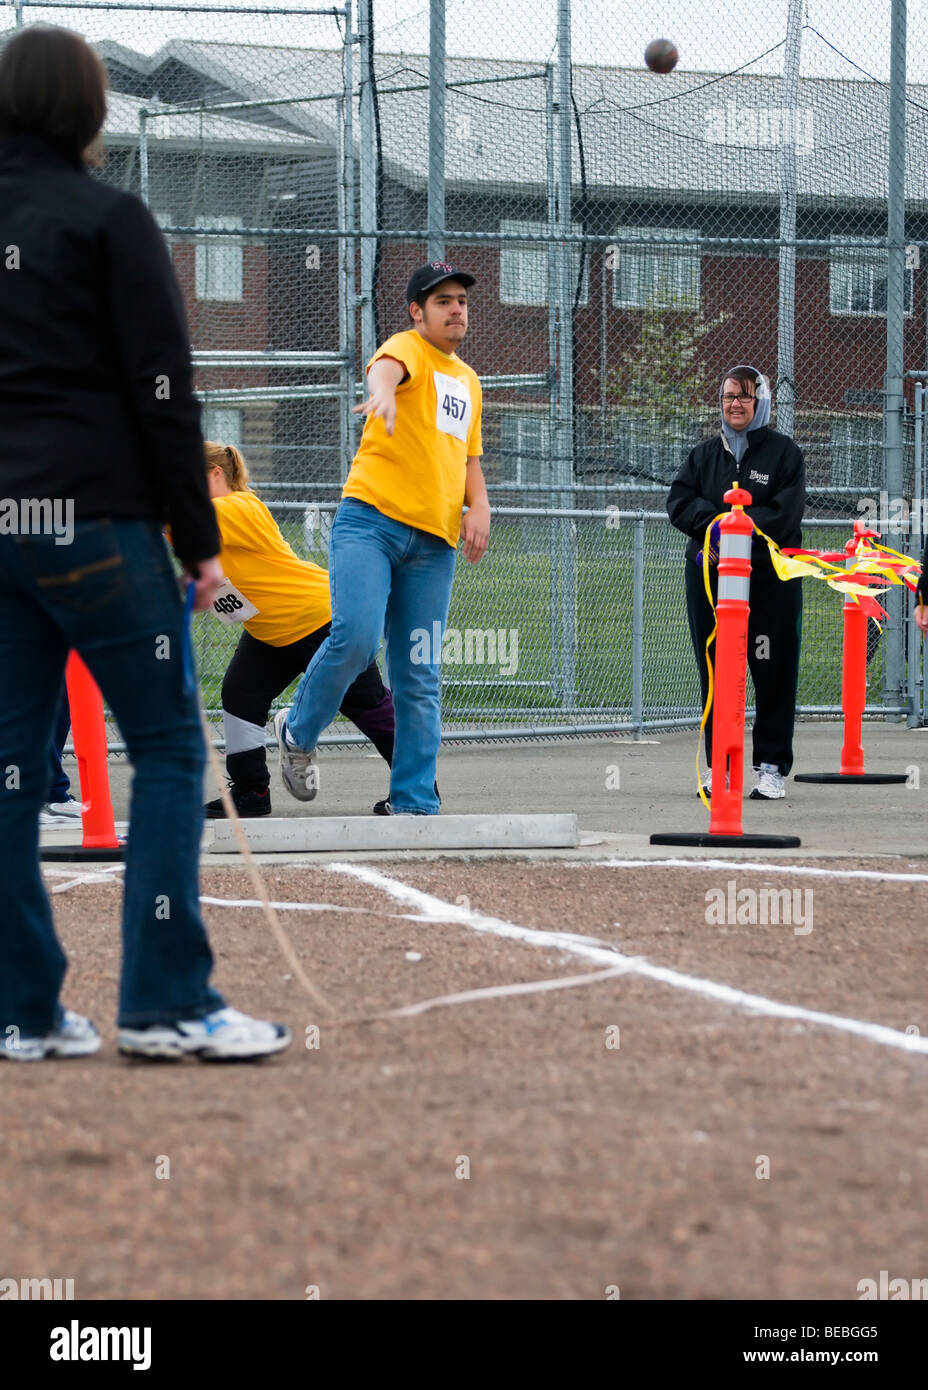 A young man throws a shot put during competition at the Special Olympics in Tacoma, Washington. - Stock Image